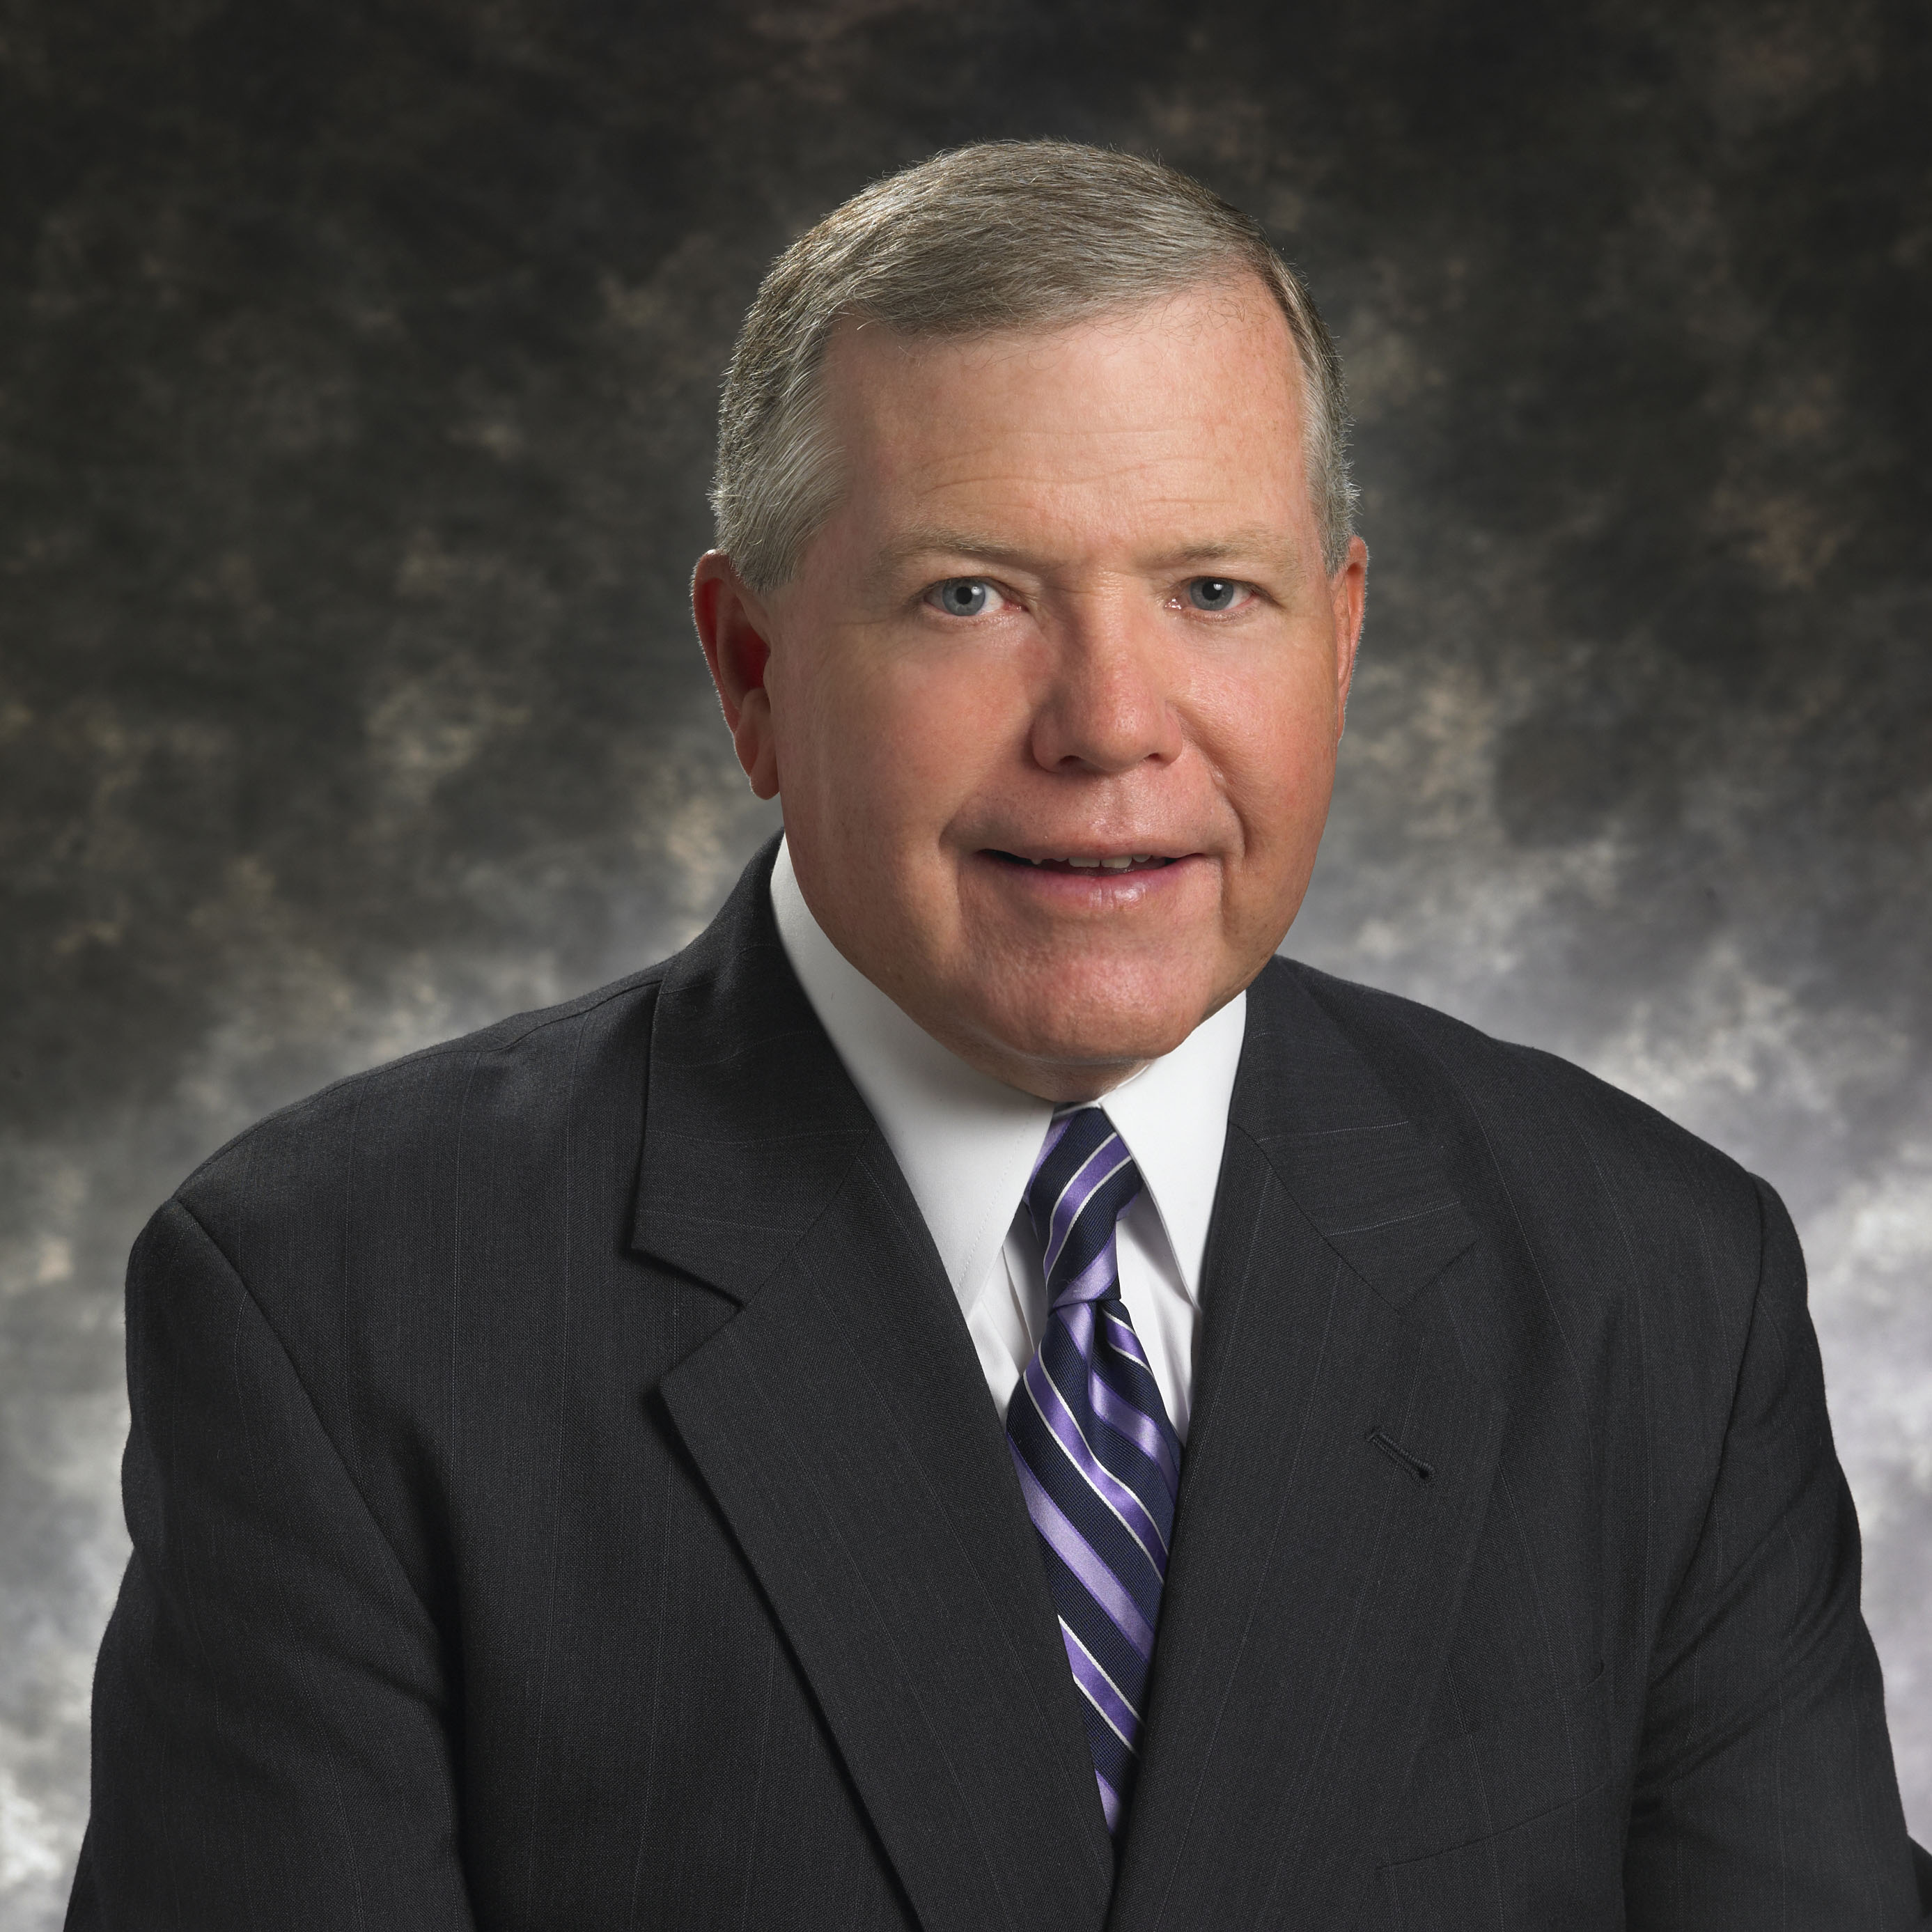 The NJCPA Honors Retired Partner John Dailey with the 2021 Lifetime Leader Award